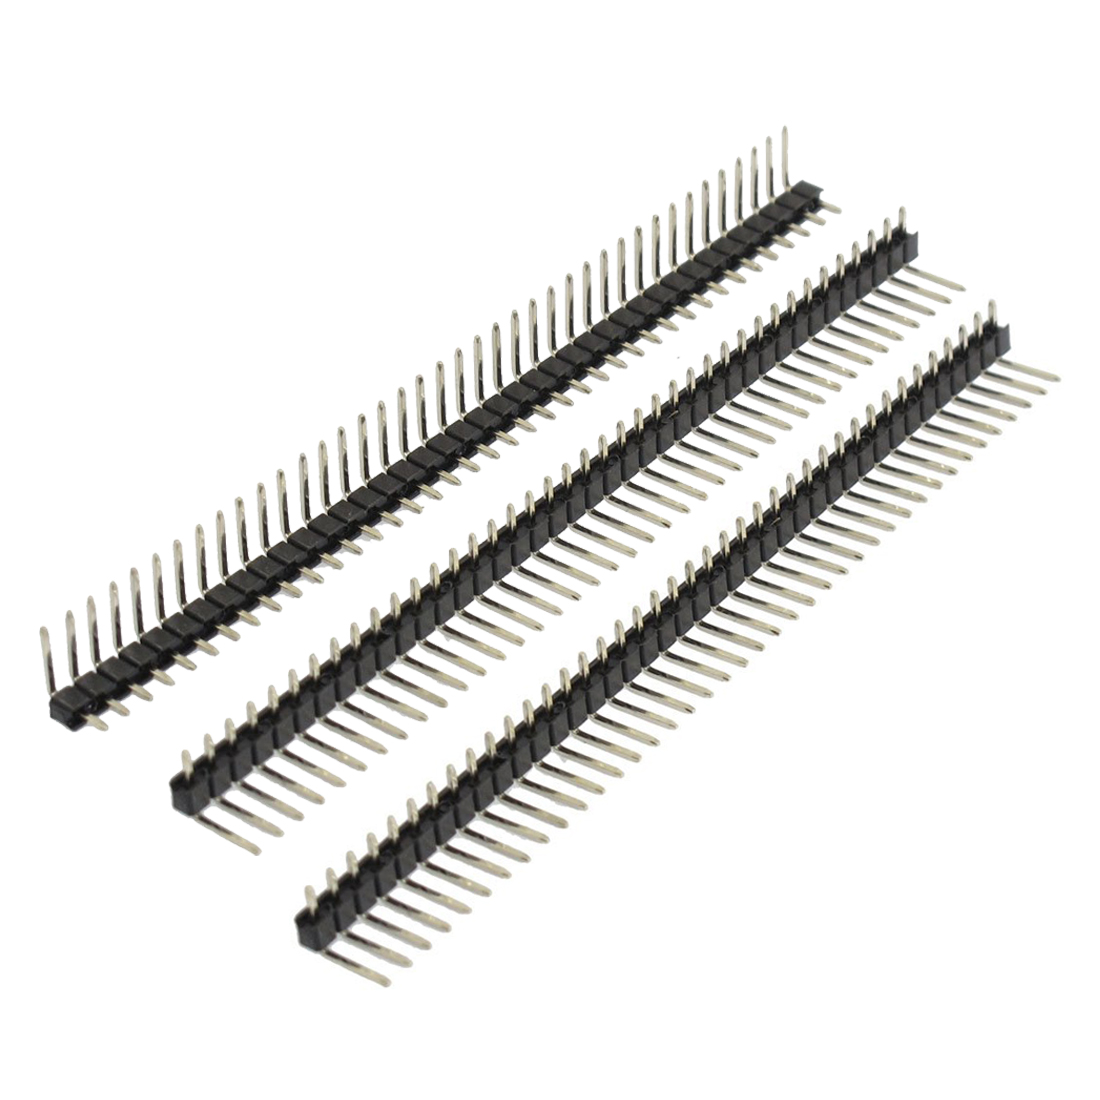 3 Pcs 40 Pins 2.54mm Pitch Right Angle PCB Board Pin Headers